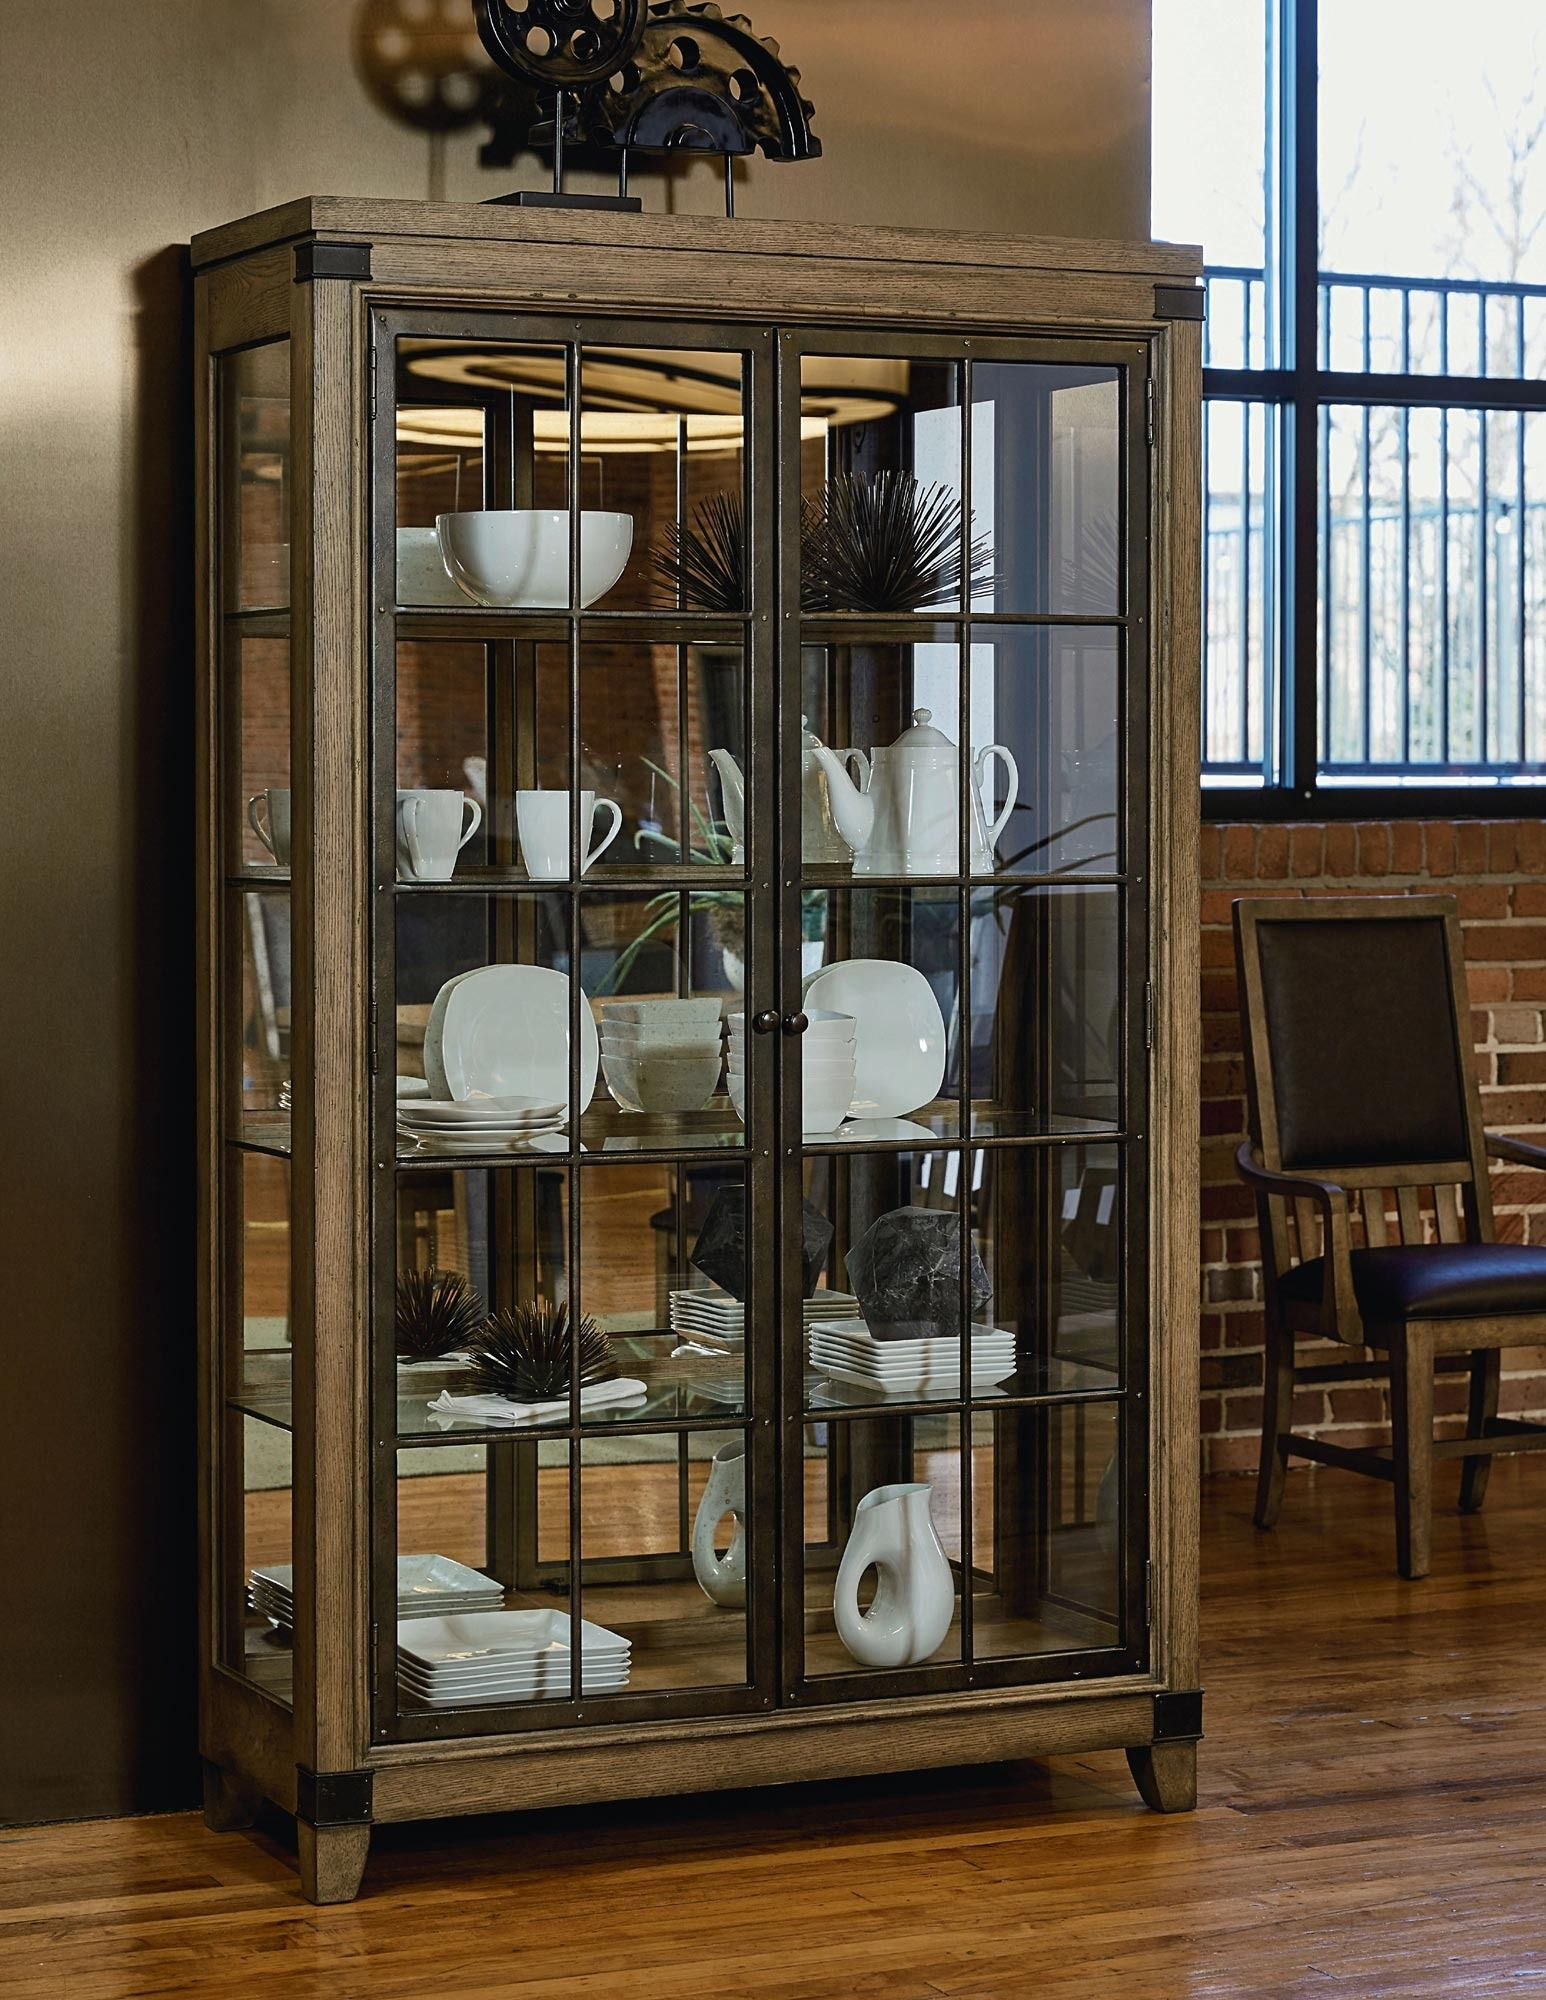 Metalworks Bunching Display Cabinet In Oak Legacy Classic Furniture Home Gallery Stores Glass Curio Cabinets Furniture China Cabinet